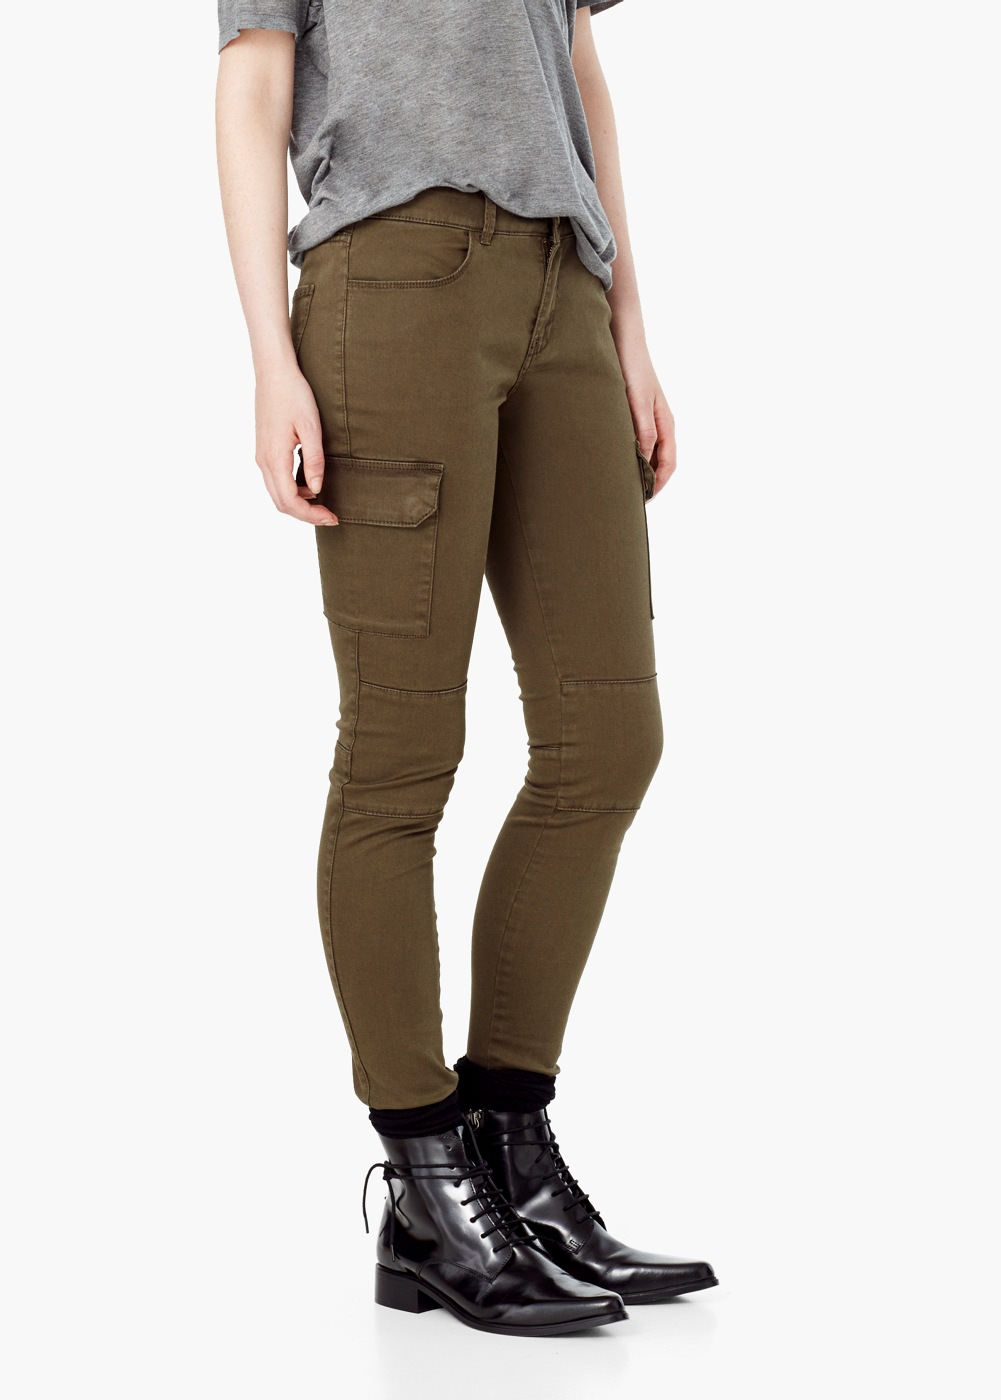 Awesome Women39s Cotton Cargo Pants Leisure Trousers Outdoor More Pocket Pants